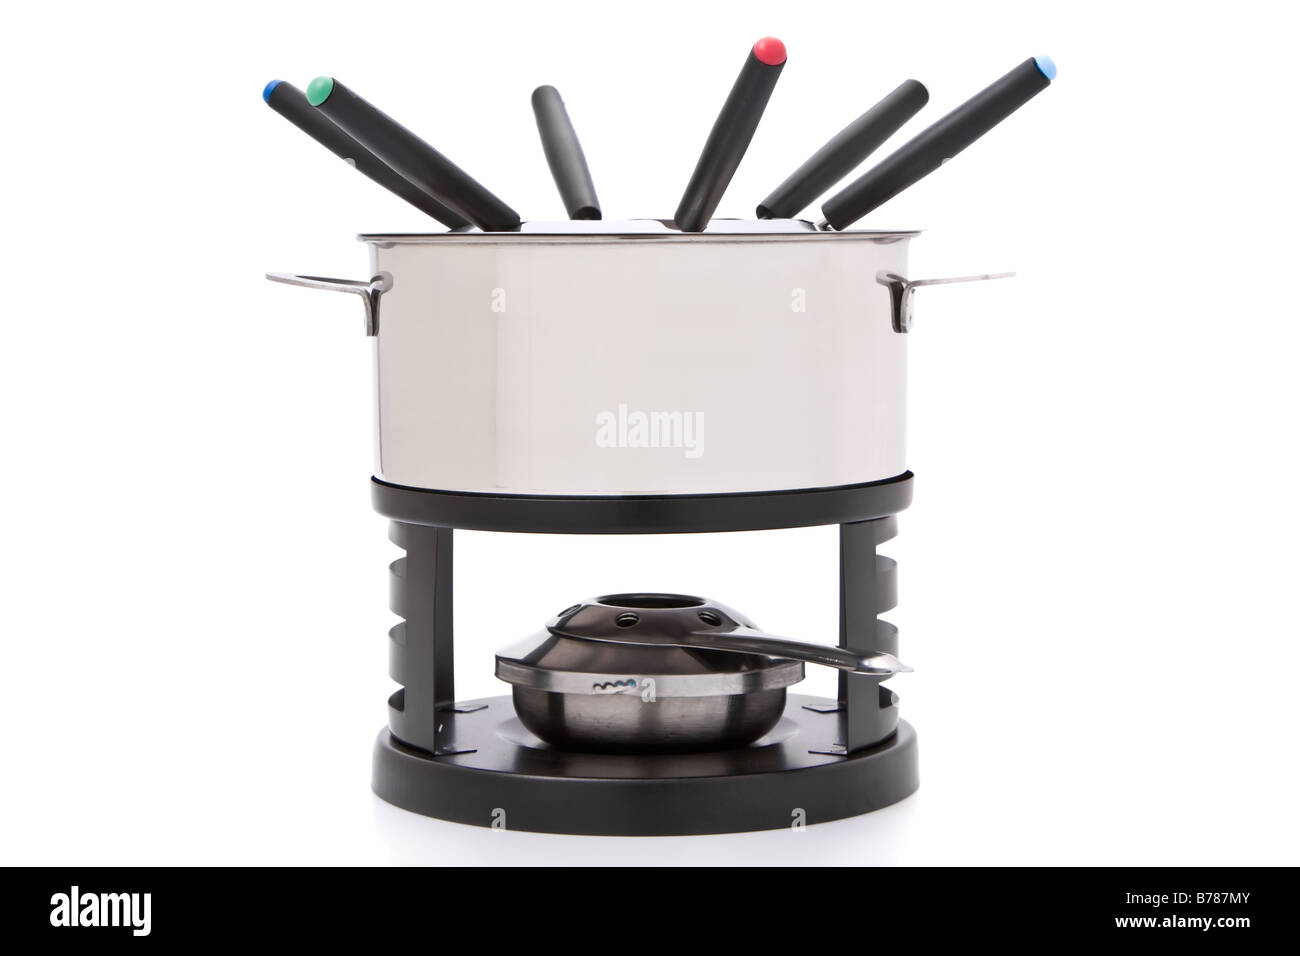 Fondue set isolated on a white background - Stock Image